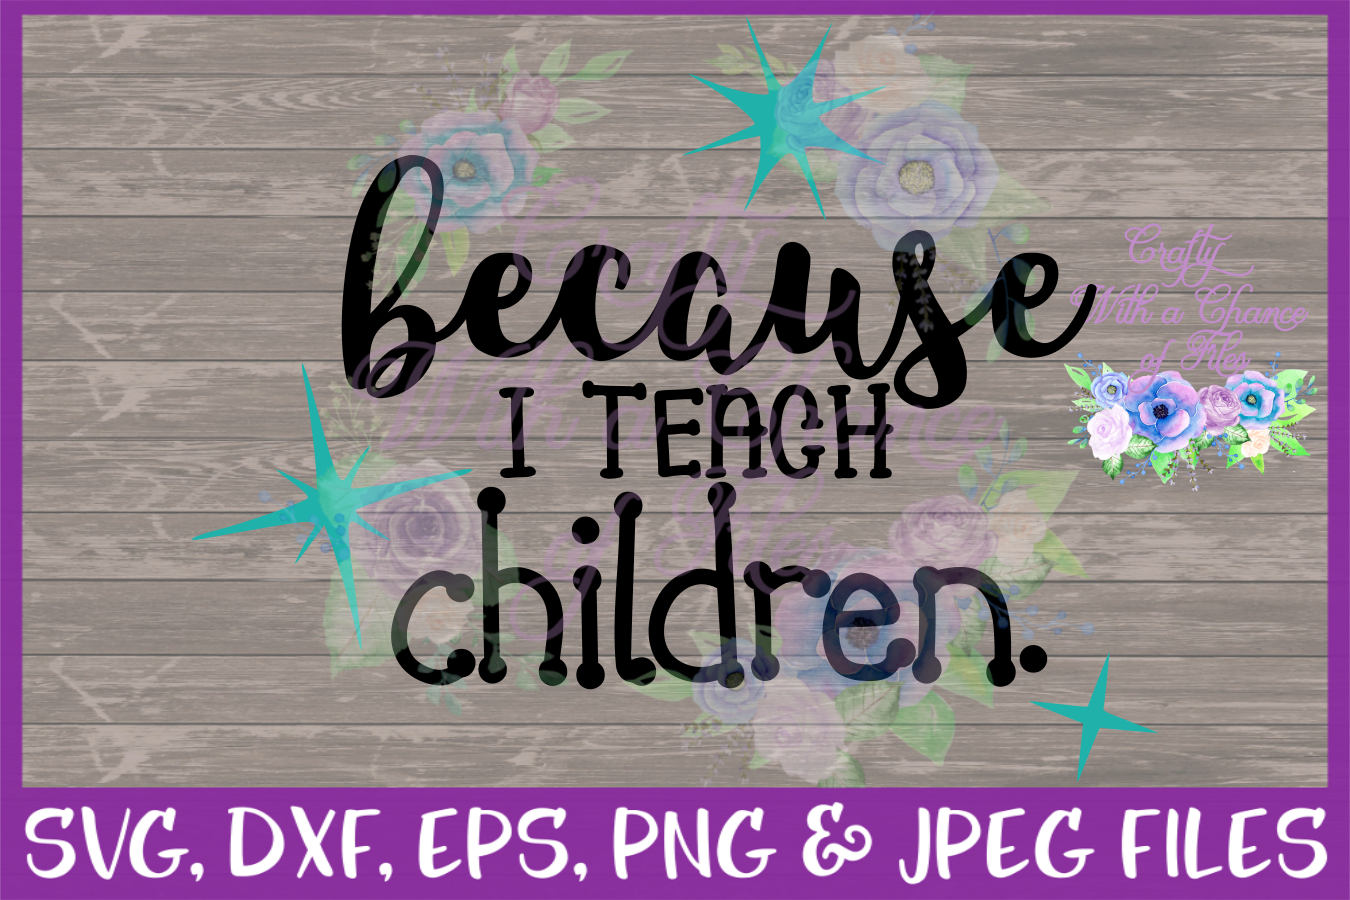 Because I Teach Children SVG - Christmas Gift Designs example image 2